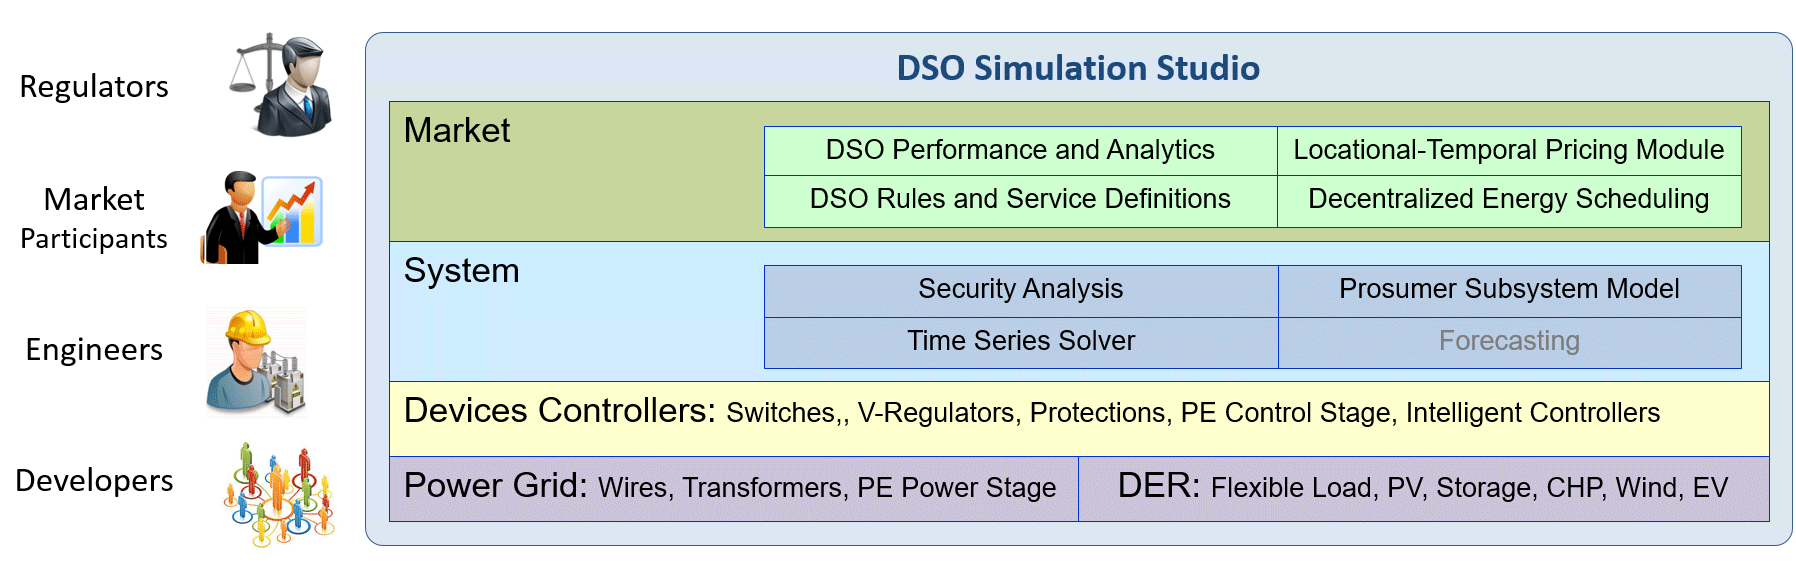 DSO Simulation Studio illustration